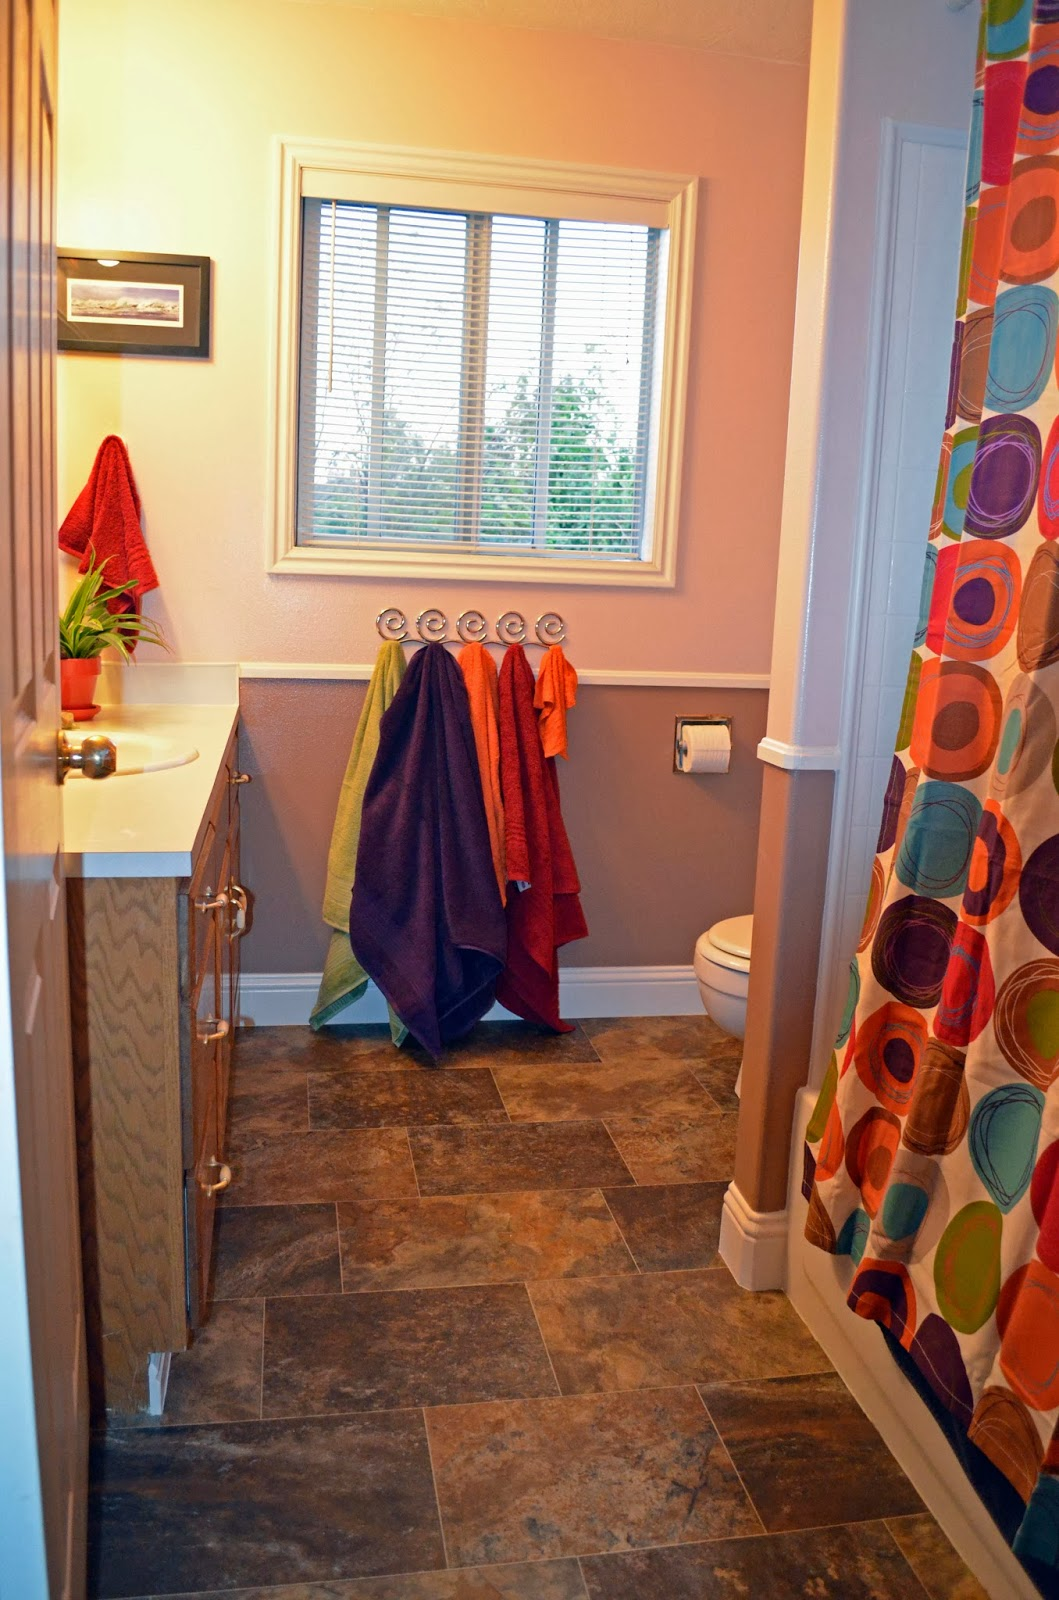 One Thing Leads To Another Mostly DIY Bathroom Repair And Remodel - Bathroom repair and remodel